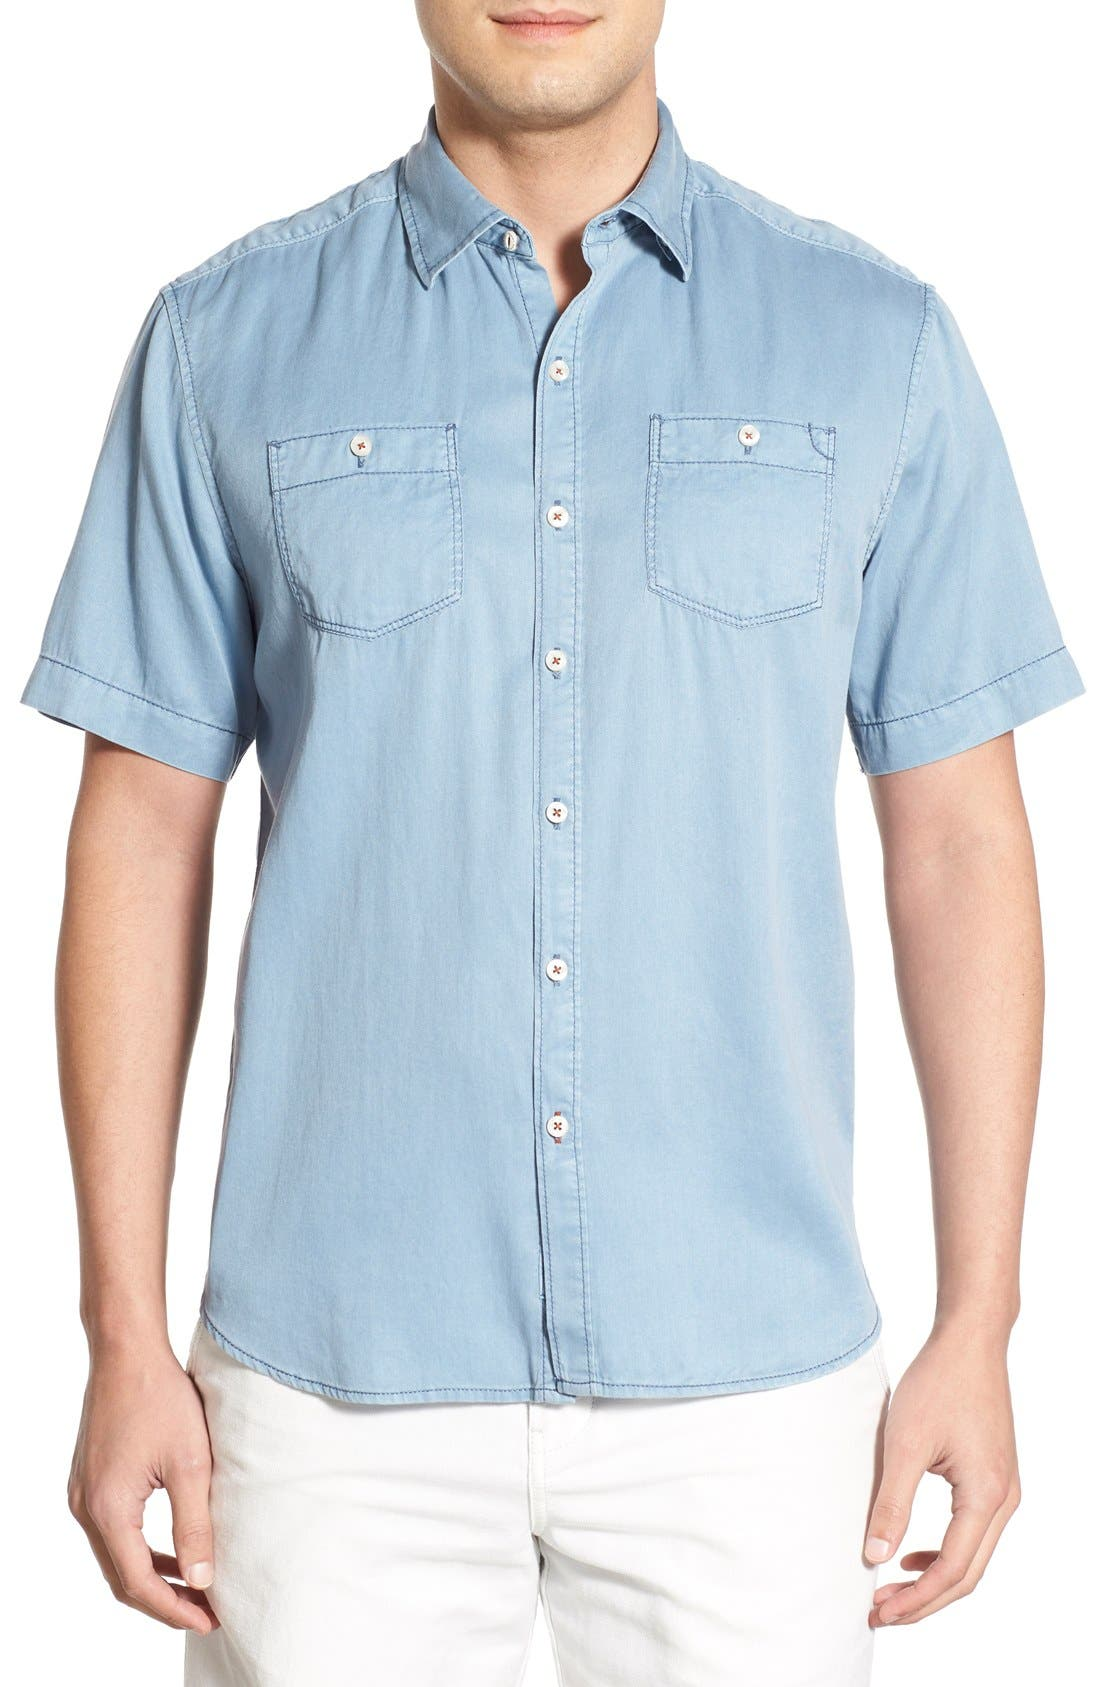 'New Twilly' Island Modern Fit Short Sleeve Twill Shirt,                             Main thumbnail 1, color,                             Denim Blue